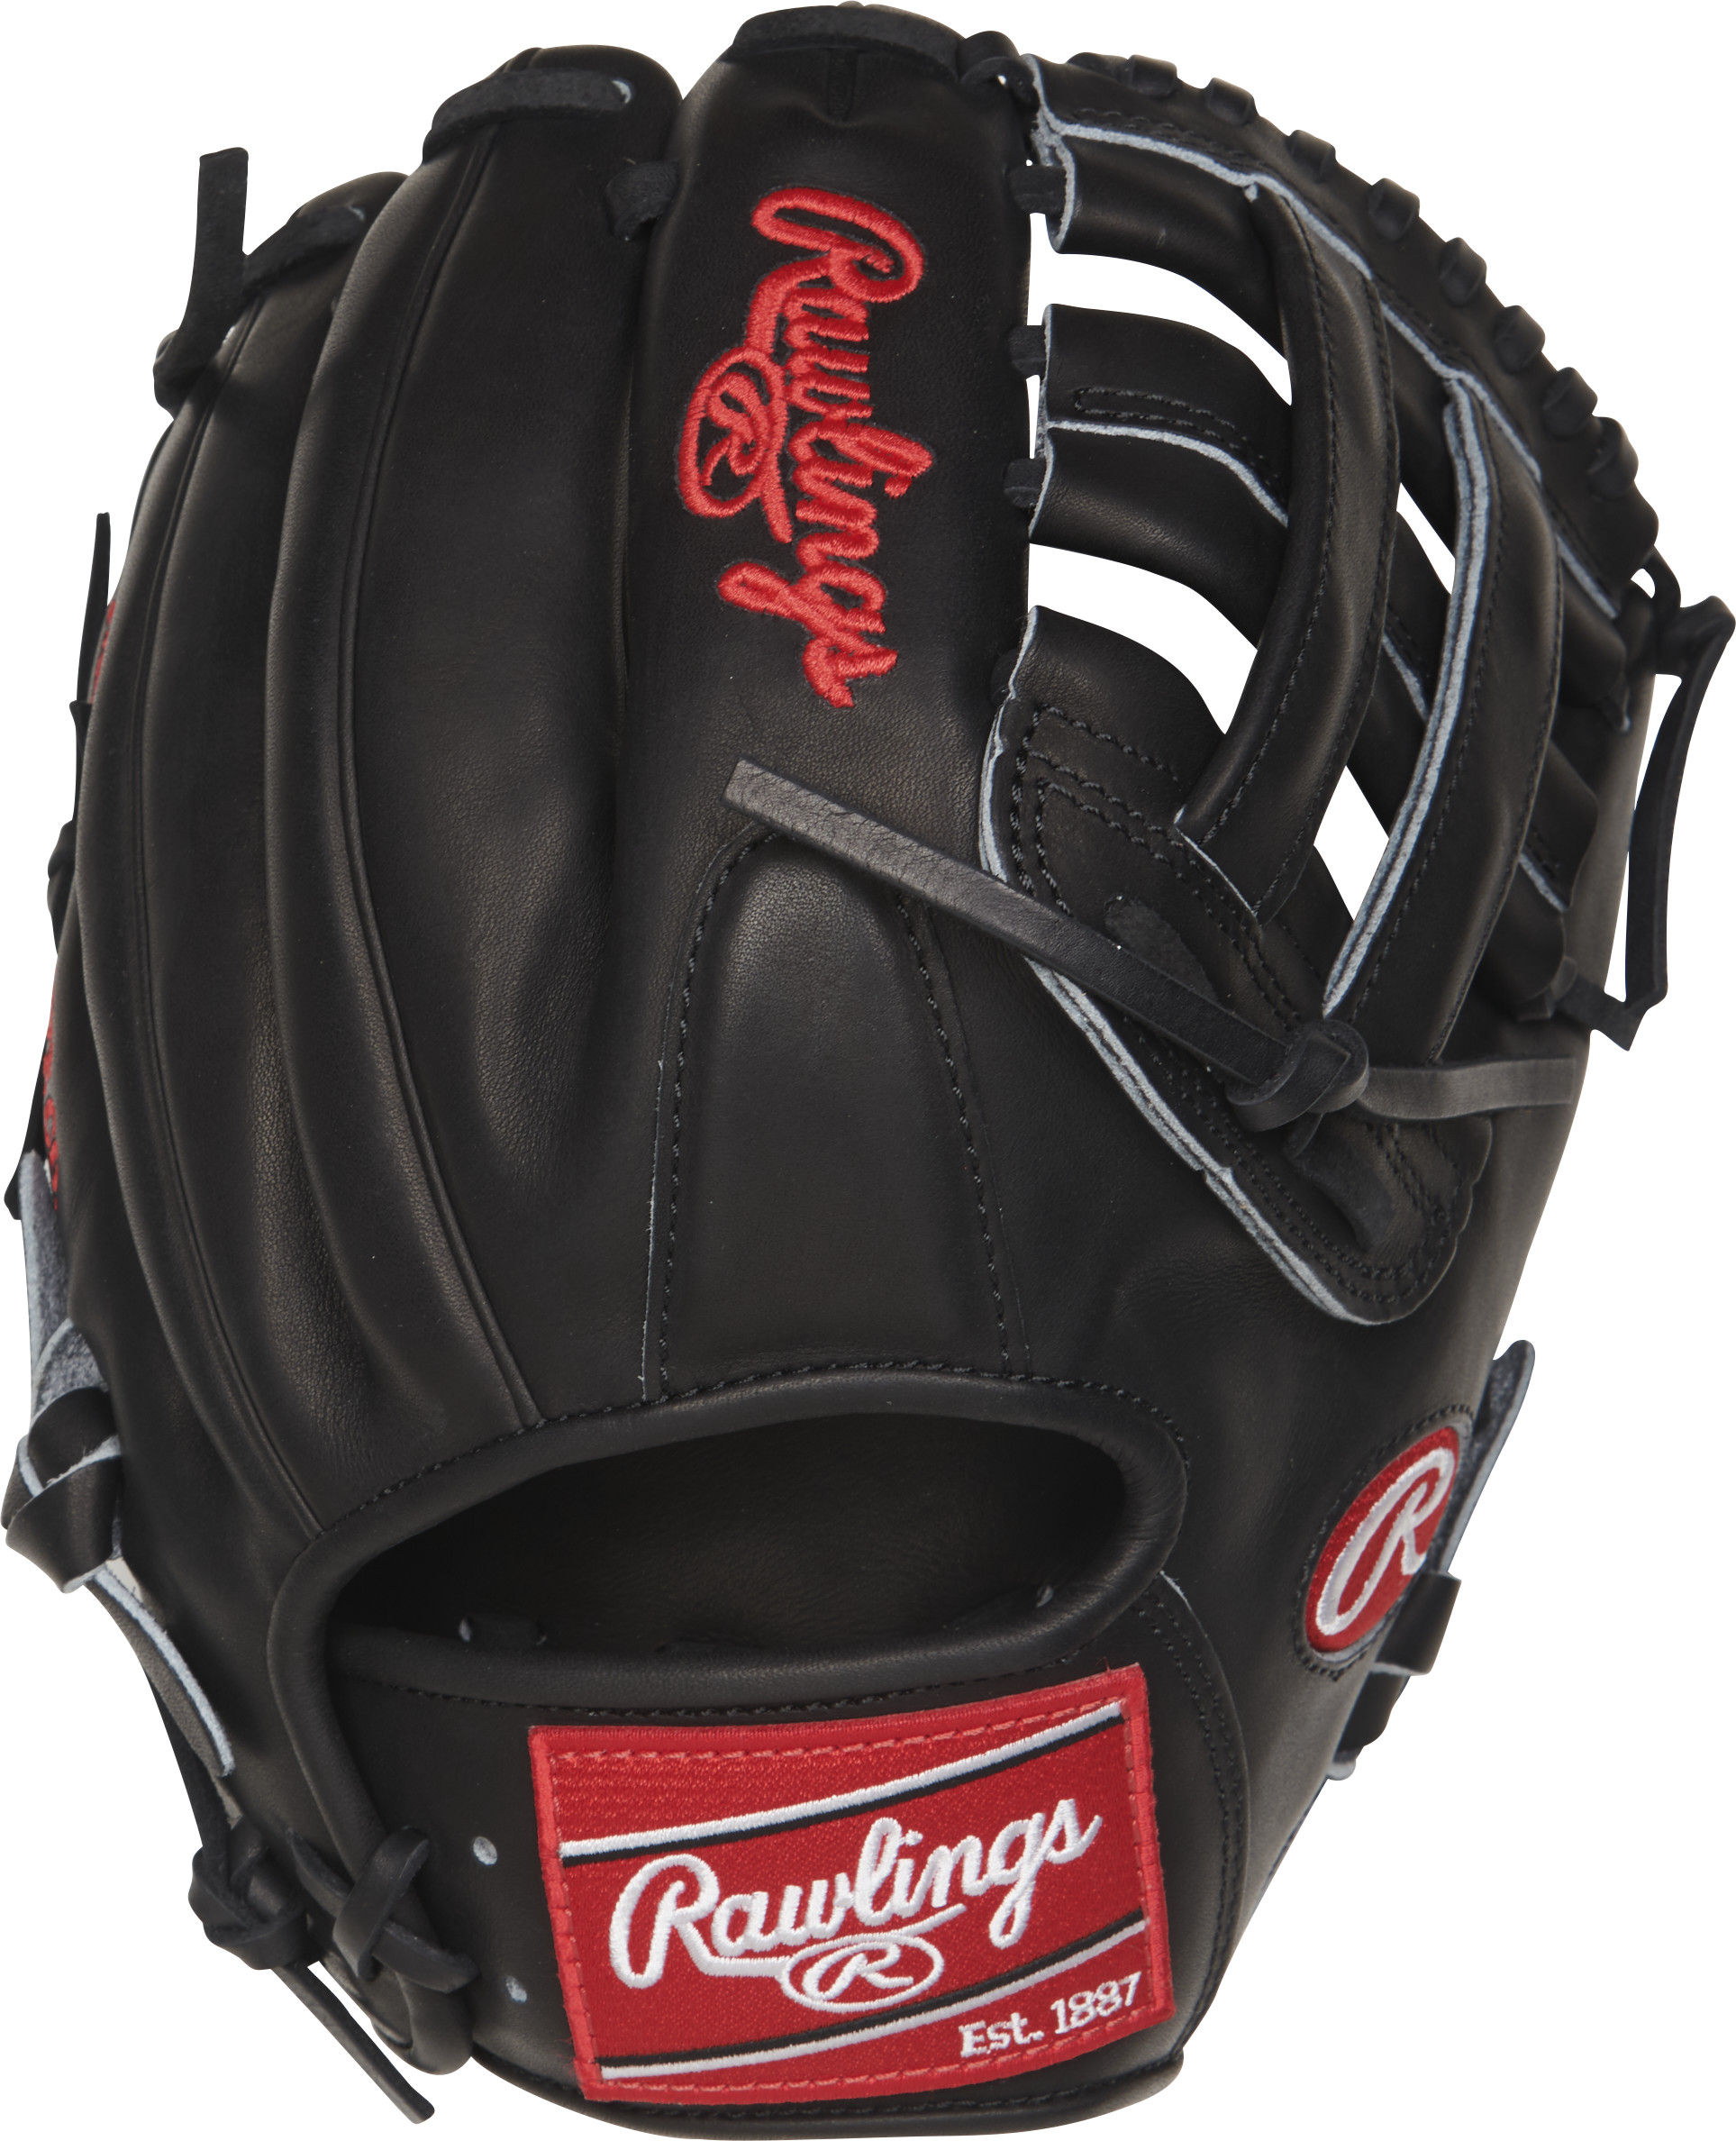 http://www.bestbatdeals.com/images/gloves/rawlings/PROCS5-2.jpg